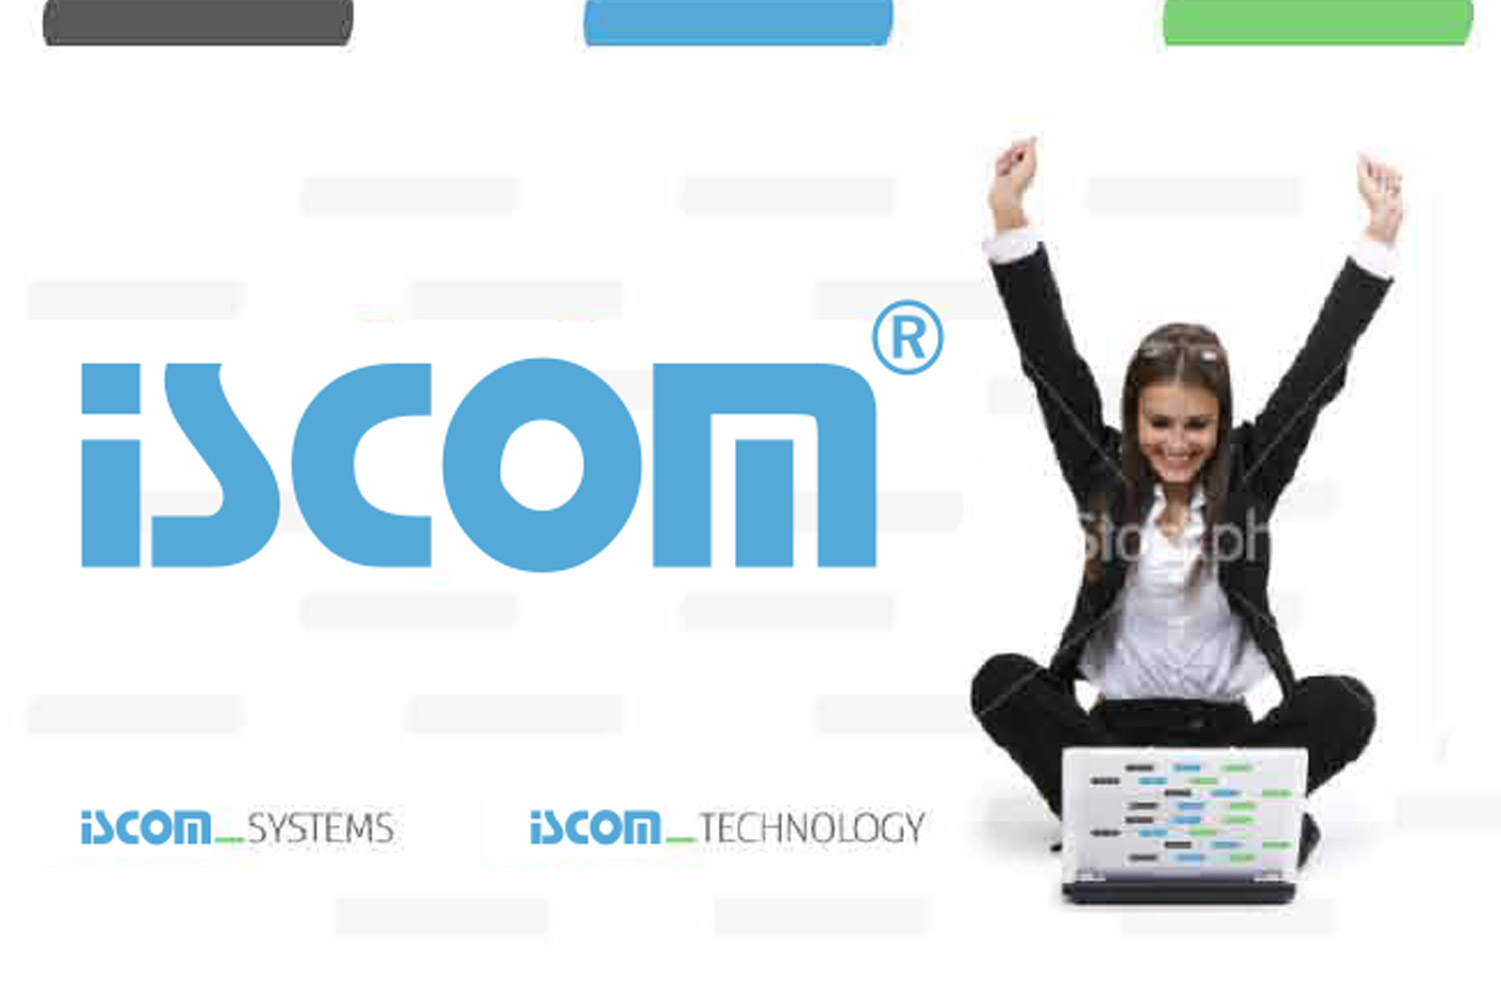 Iscom, Corporate Identity image